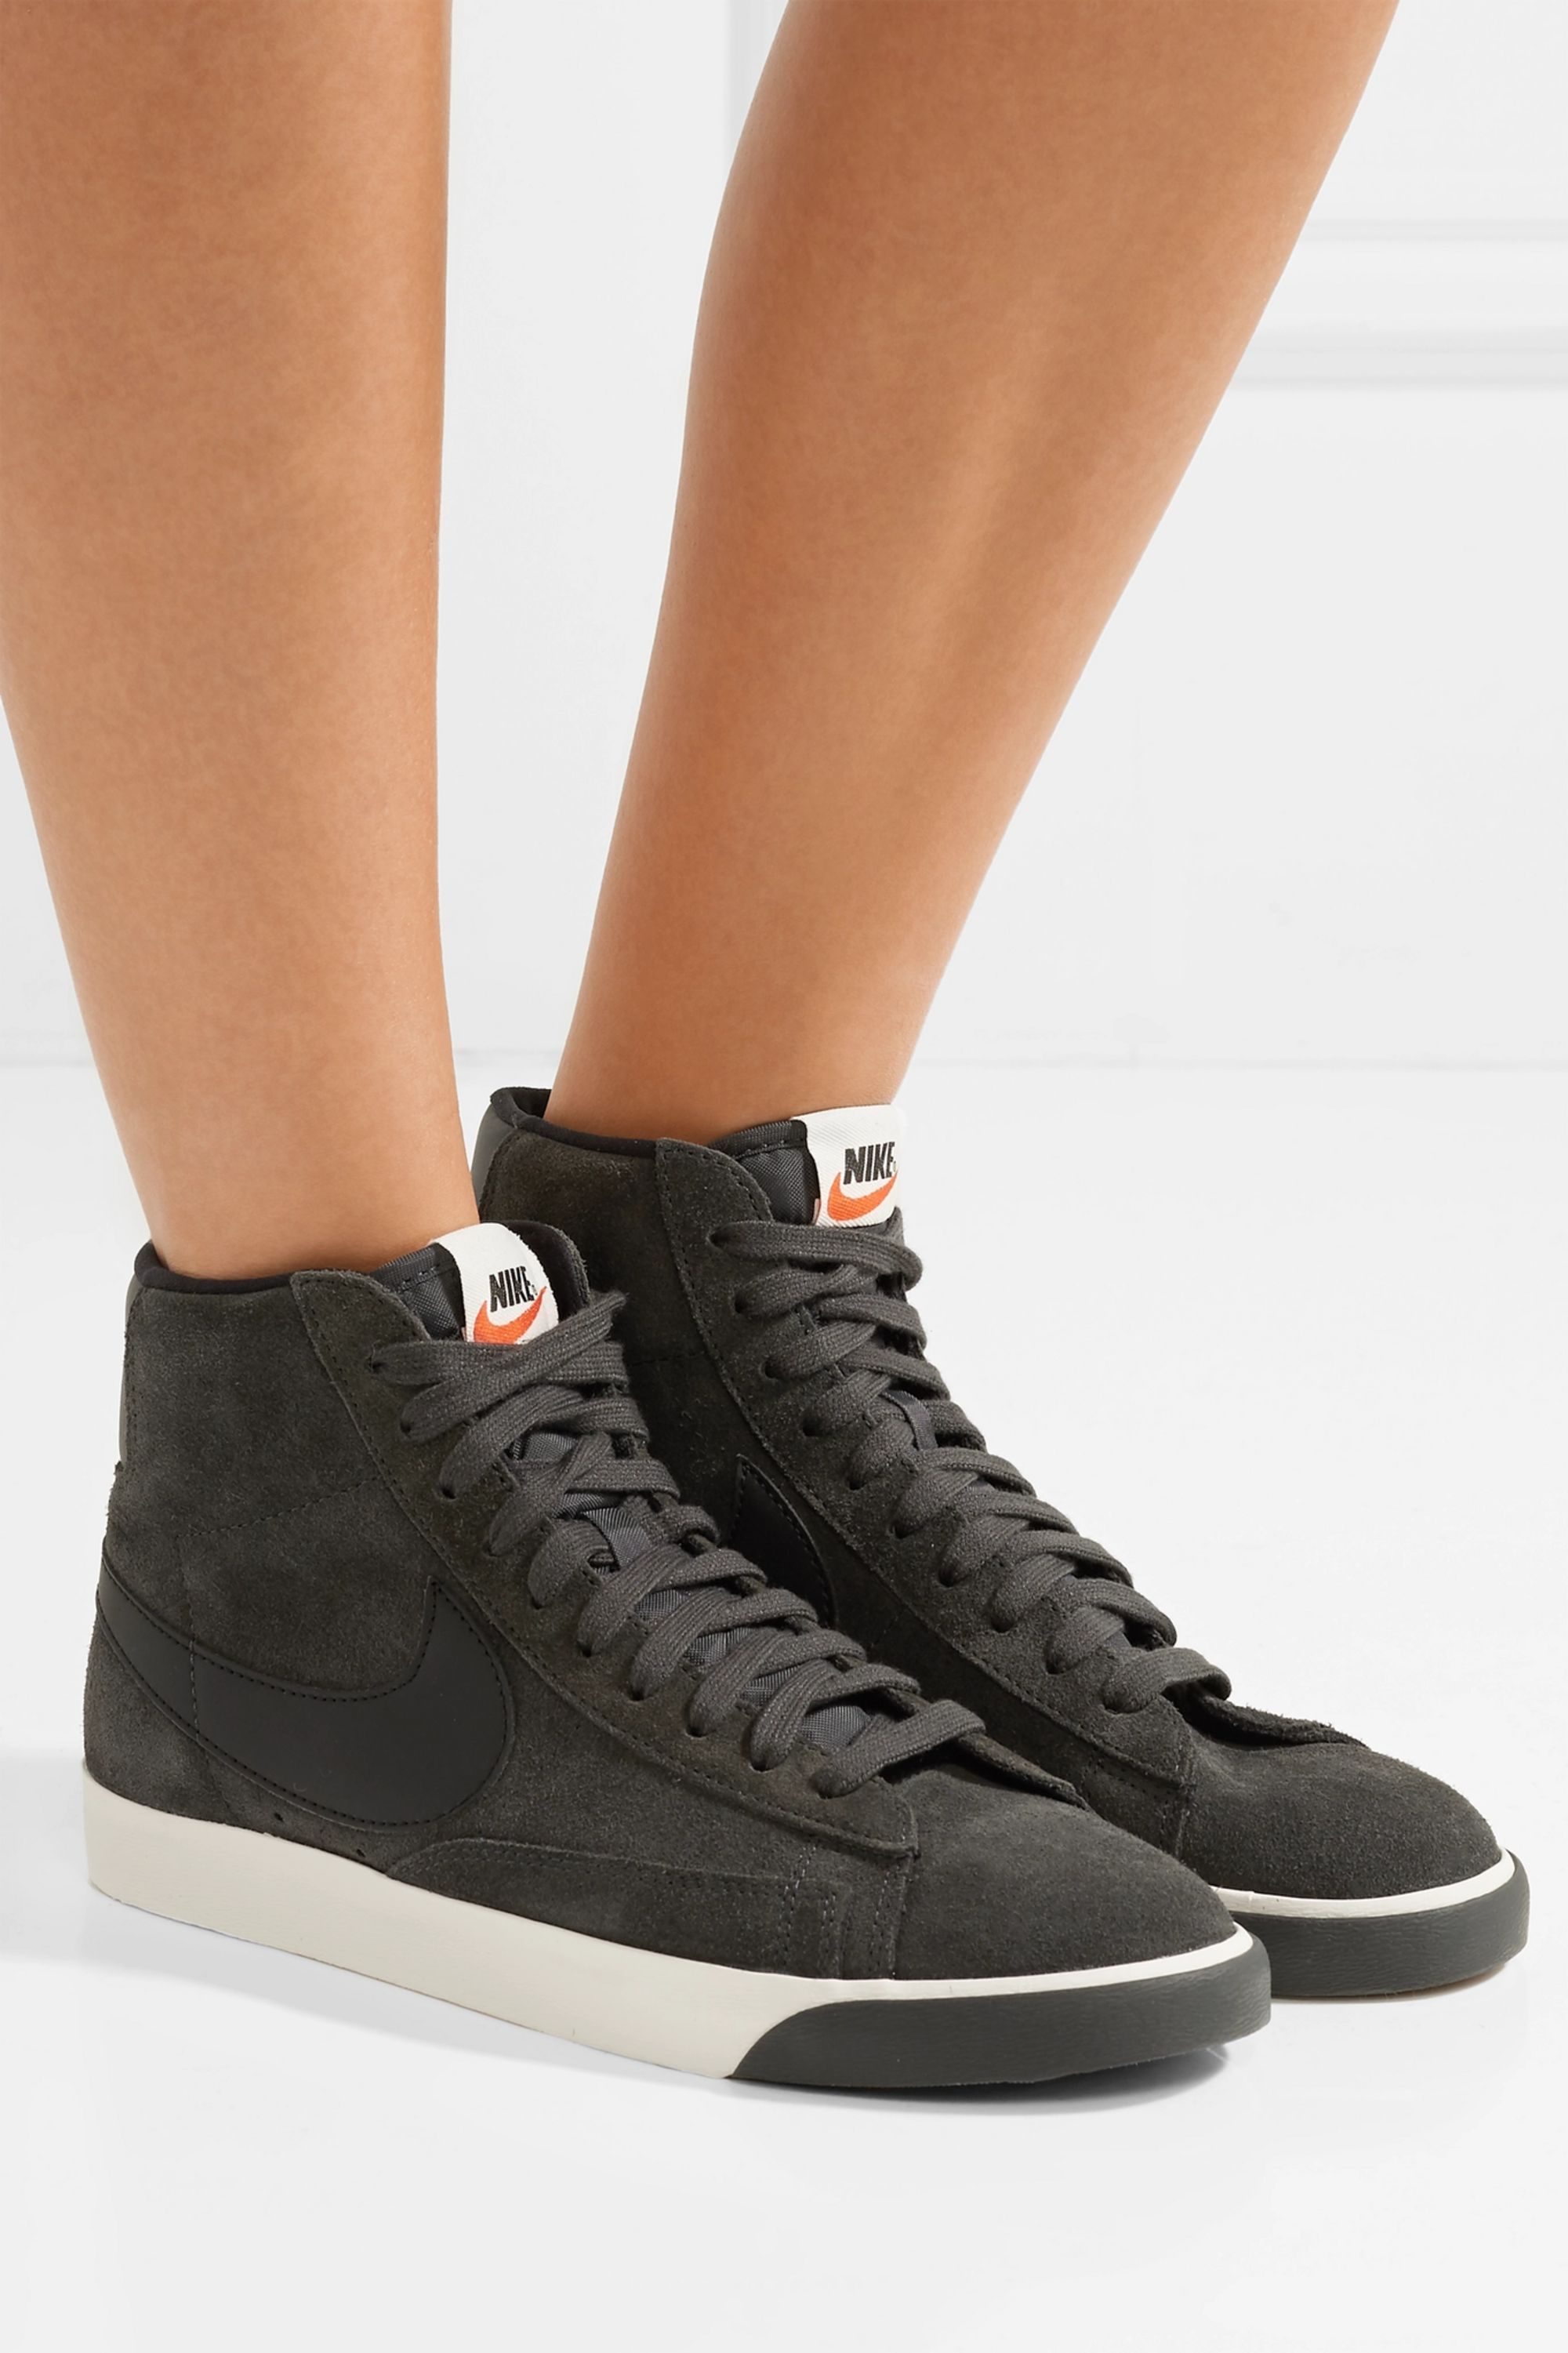 Cardenal Dormitorio acción  Charcoal Blazer Mid Vintage leather-trimmed suede sneakers | Nike |  NET-A-PORTER